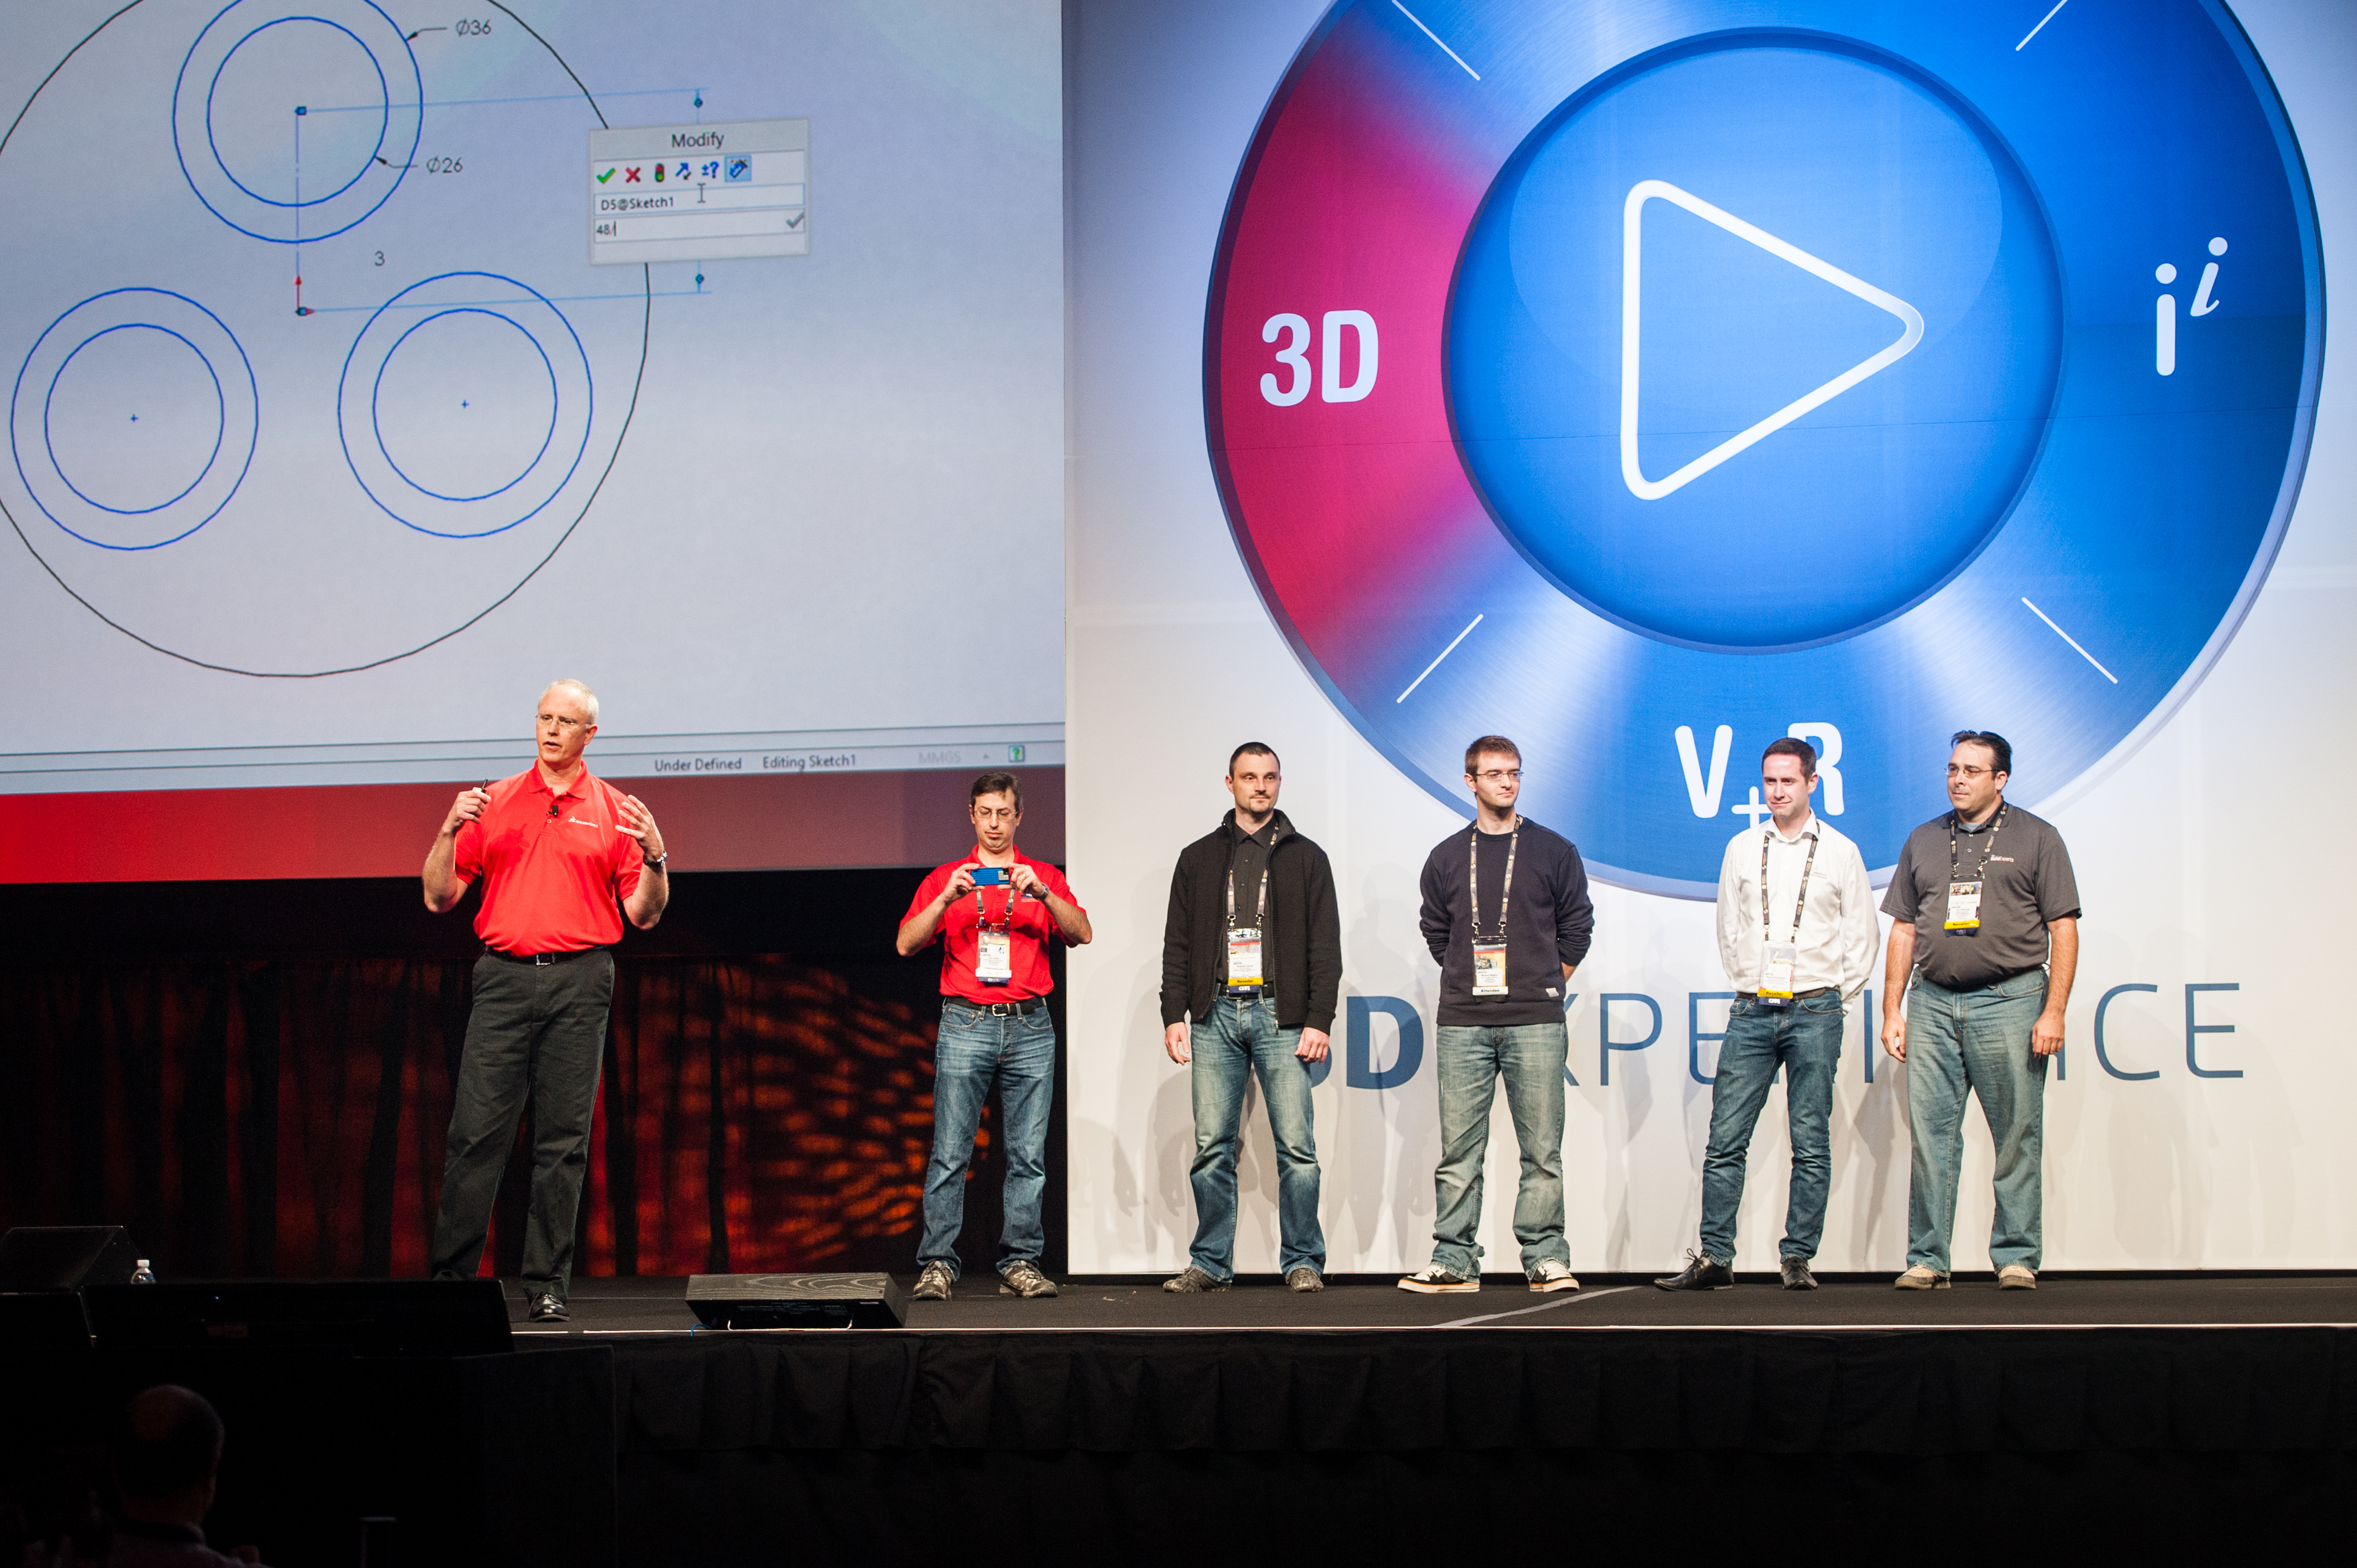 Keynote Speakers at SOLIDWORKS World 2015 Inspire Engineers and Designers to Imagine the Possibilities